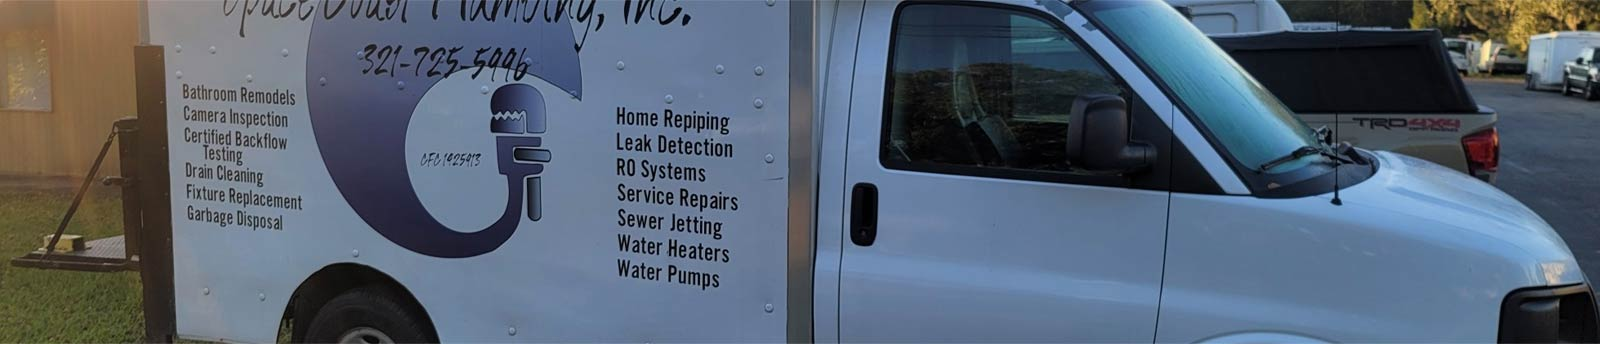 Basic Maintenance You Can Handle Without a Florida Plumber